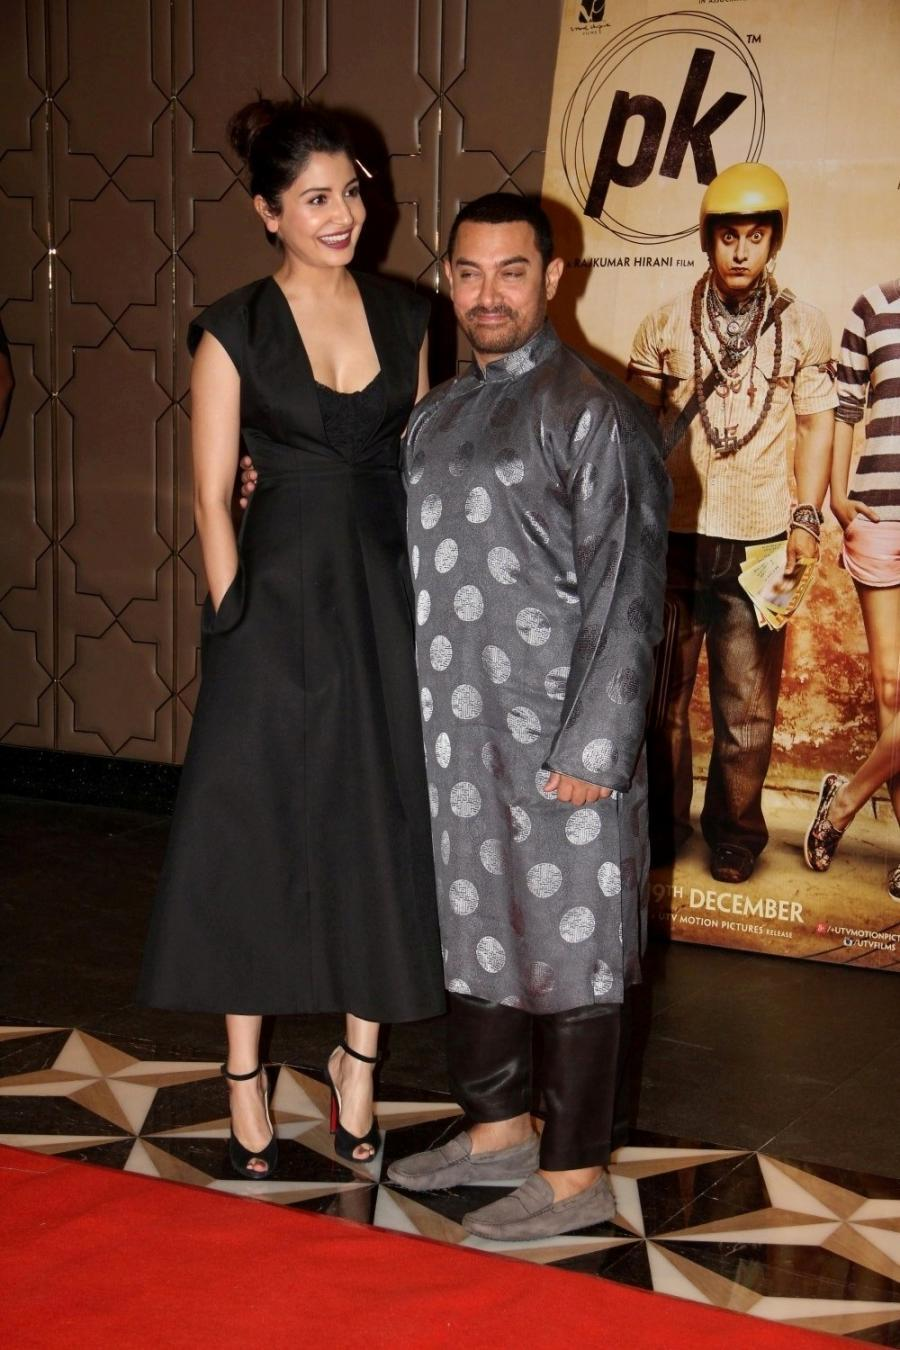 Aamir Khan & Anushka Sharma at Success Party of PK Movie in Mumbai